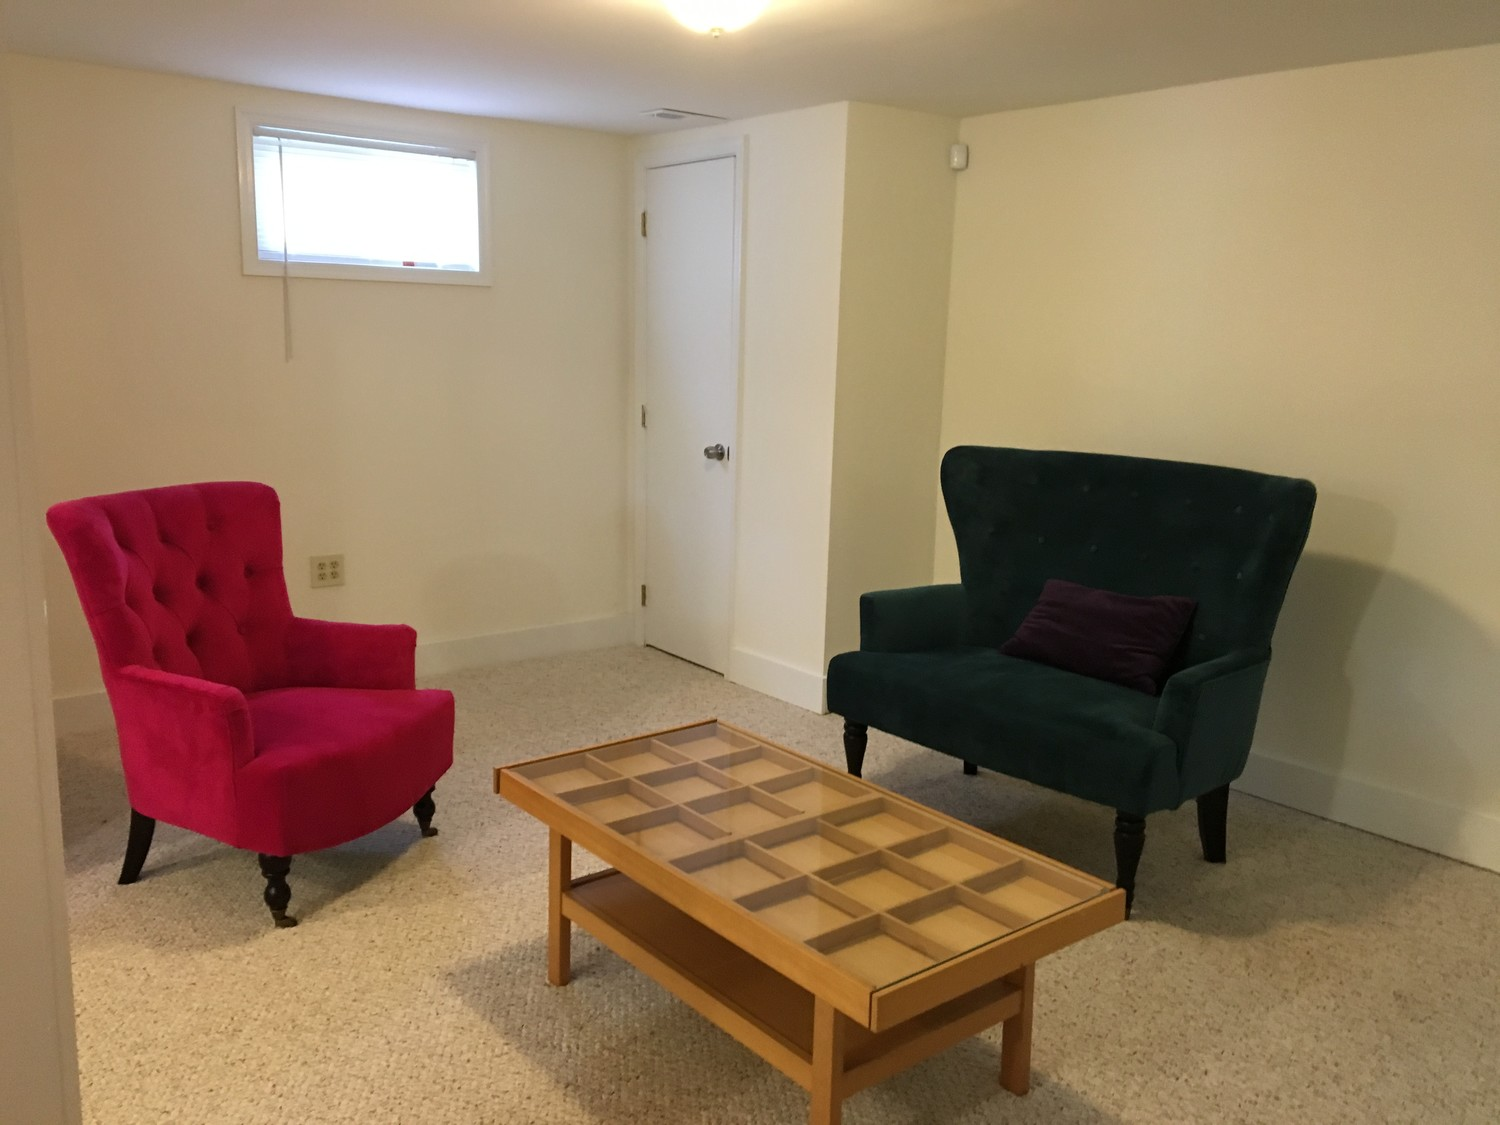 700 sq. ft. bedroom in English style basement for a single student